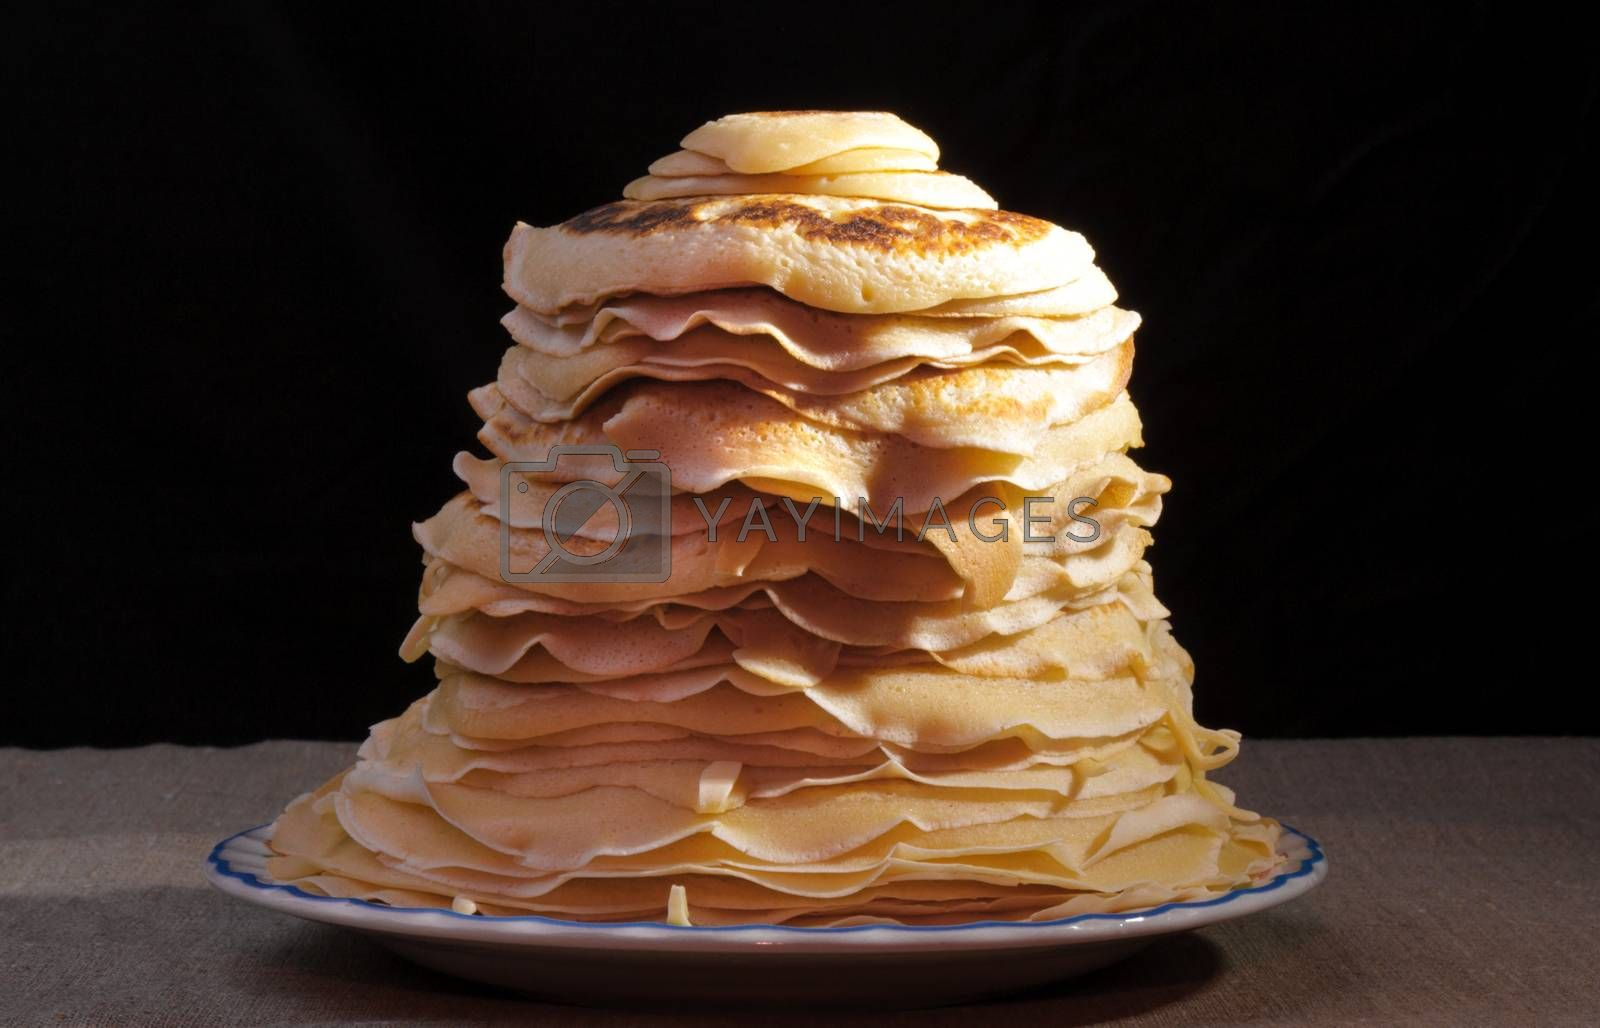 Pile of pancakes with an oil slice on a plate on black